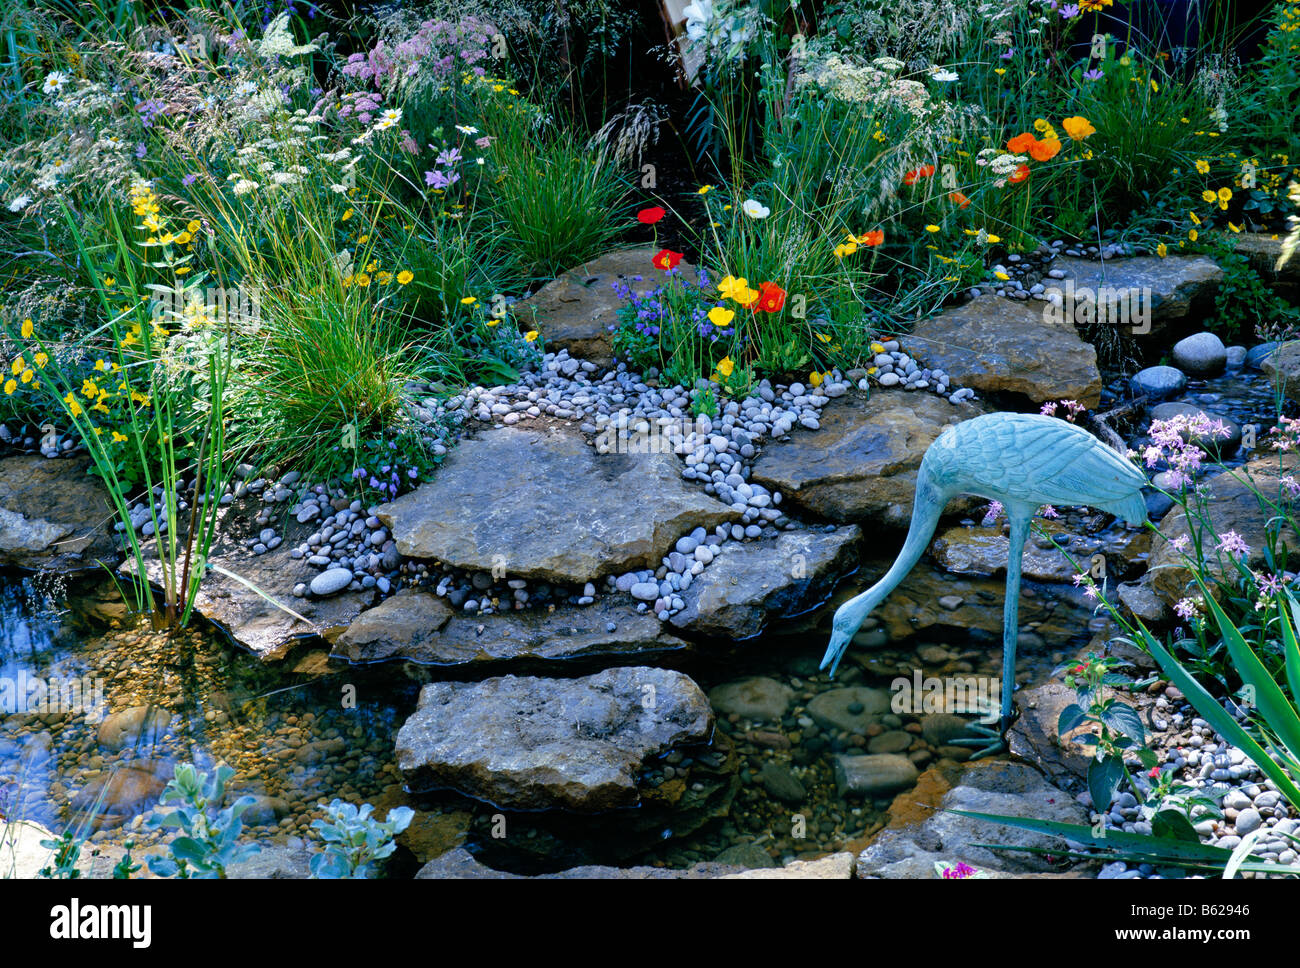 Rock and water garden - Stock Image